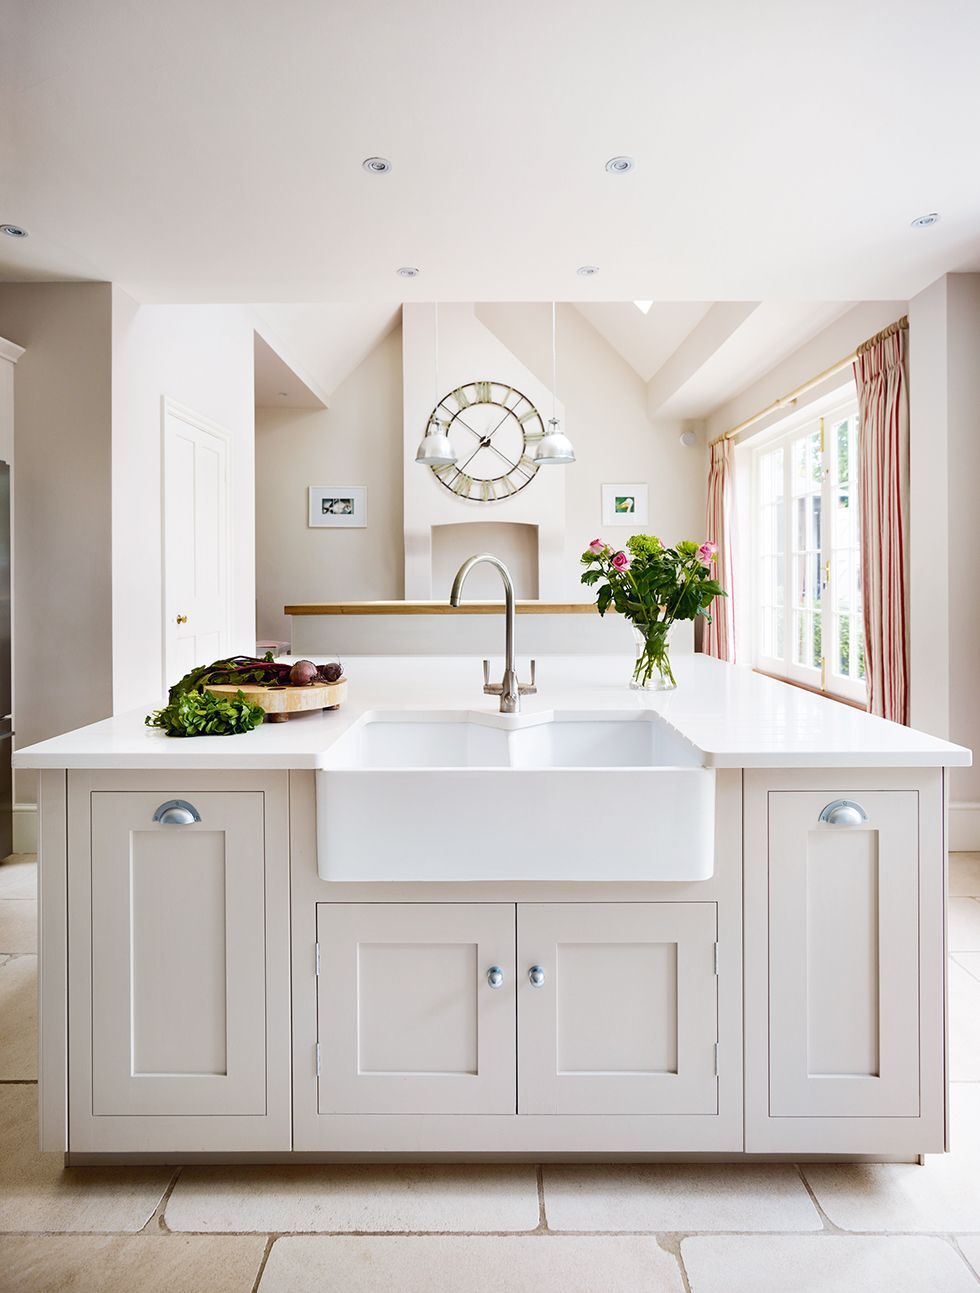 Harvey Jones Shaker kitchen with white cabinets and large island ...